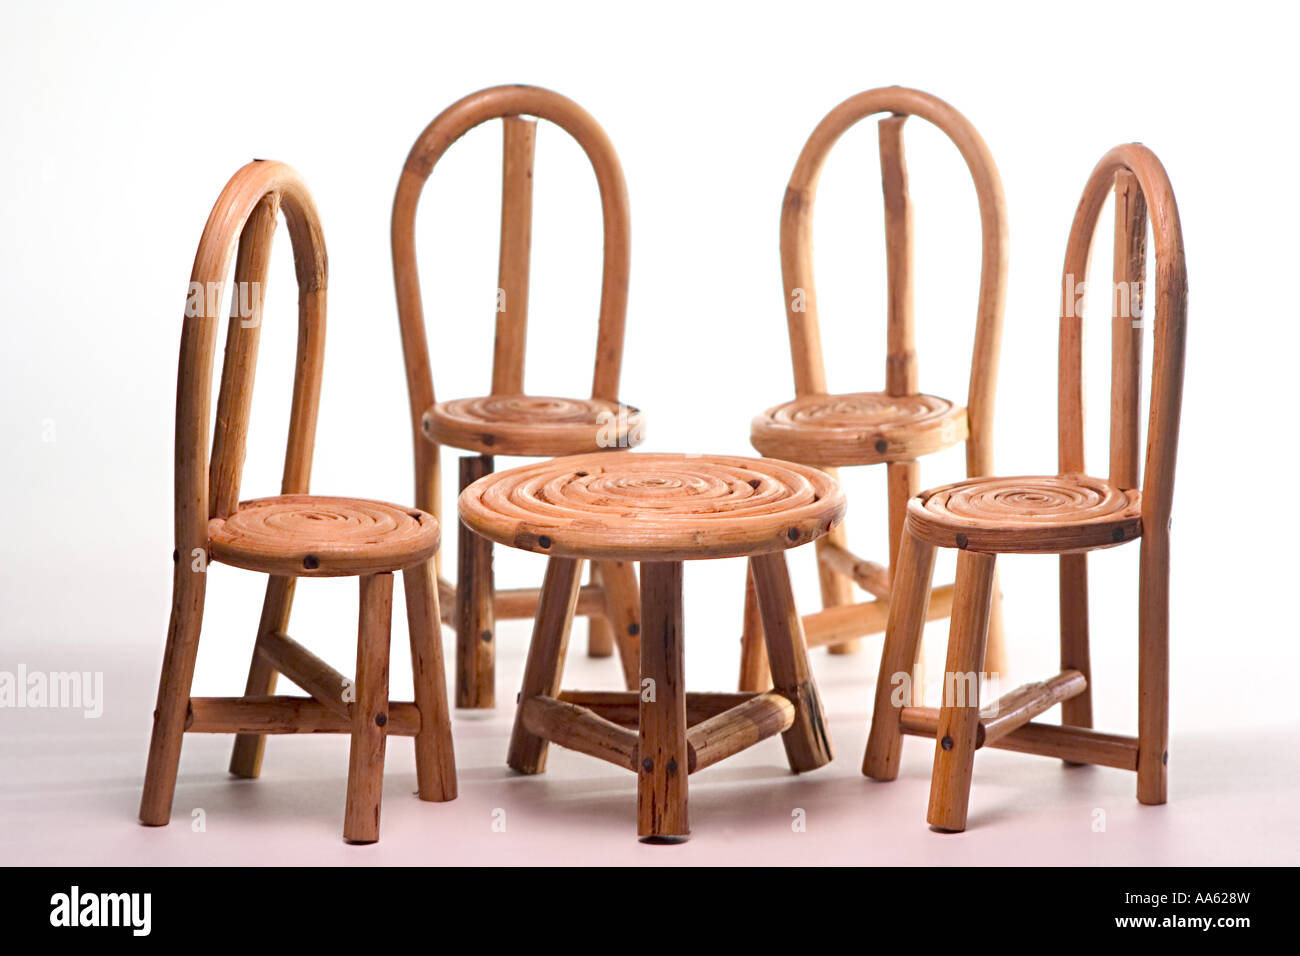 Concept Family Handicraft Four Cane Chairs And One Table Small Toy Children  Plaything Miniature